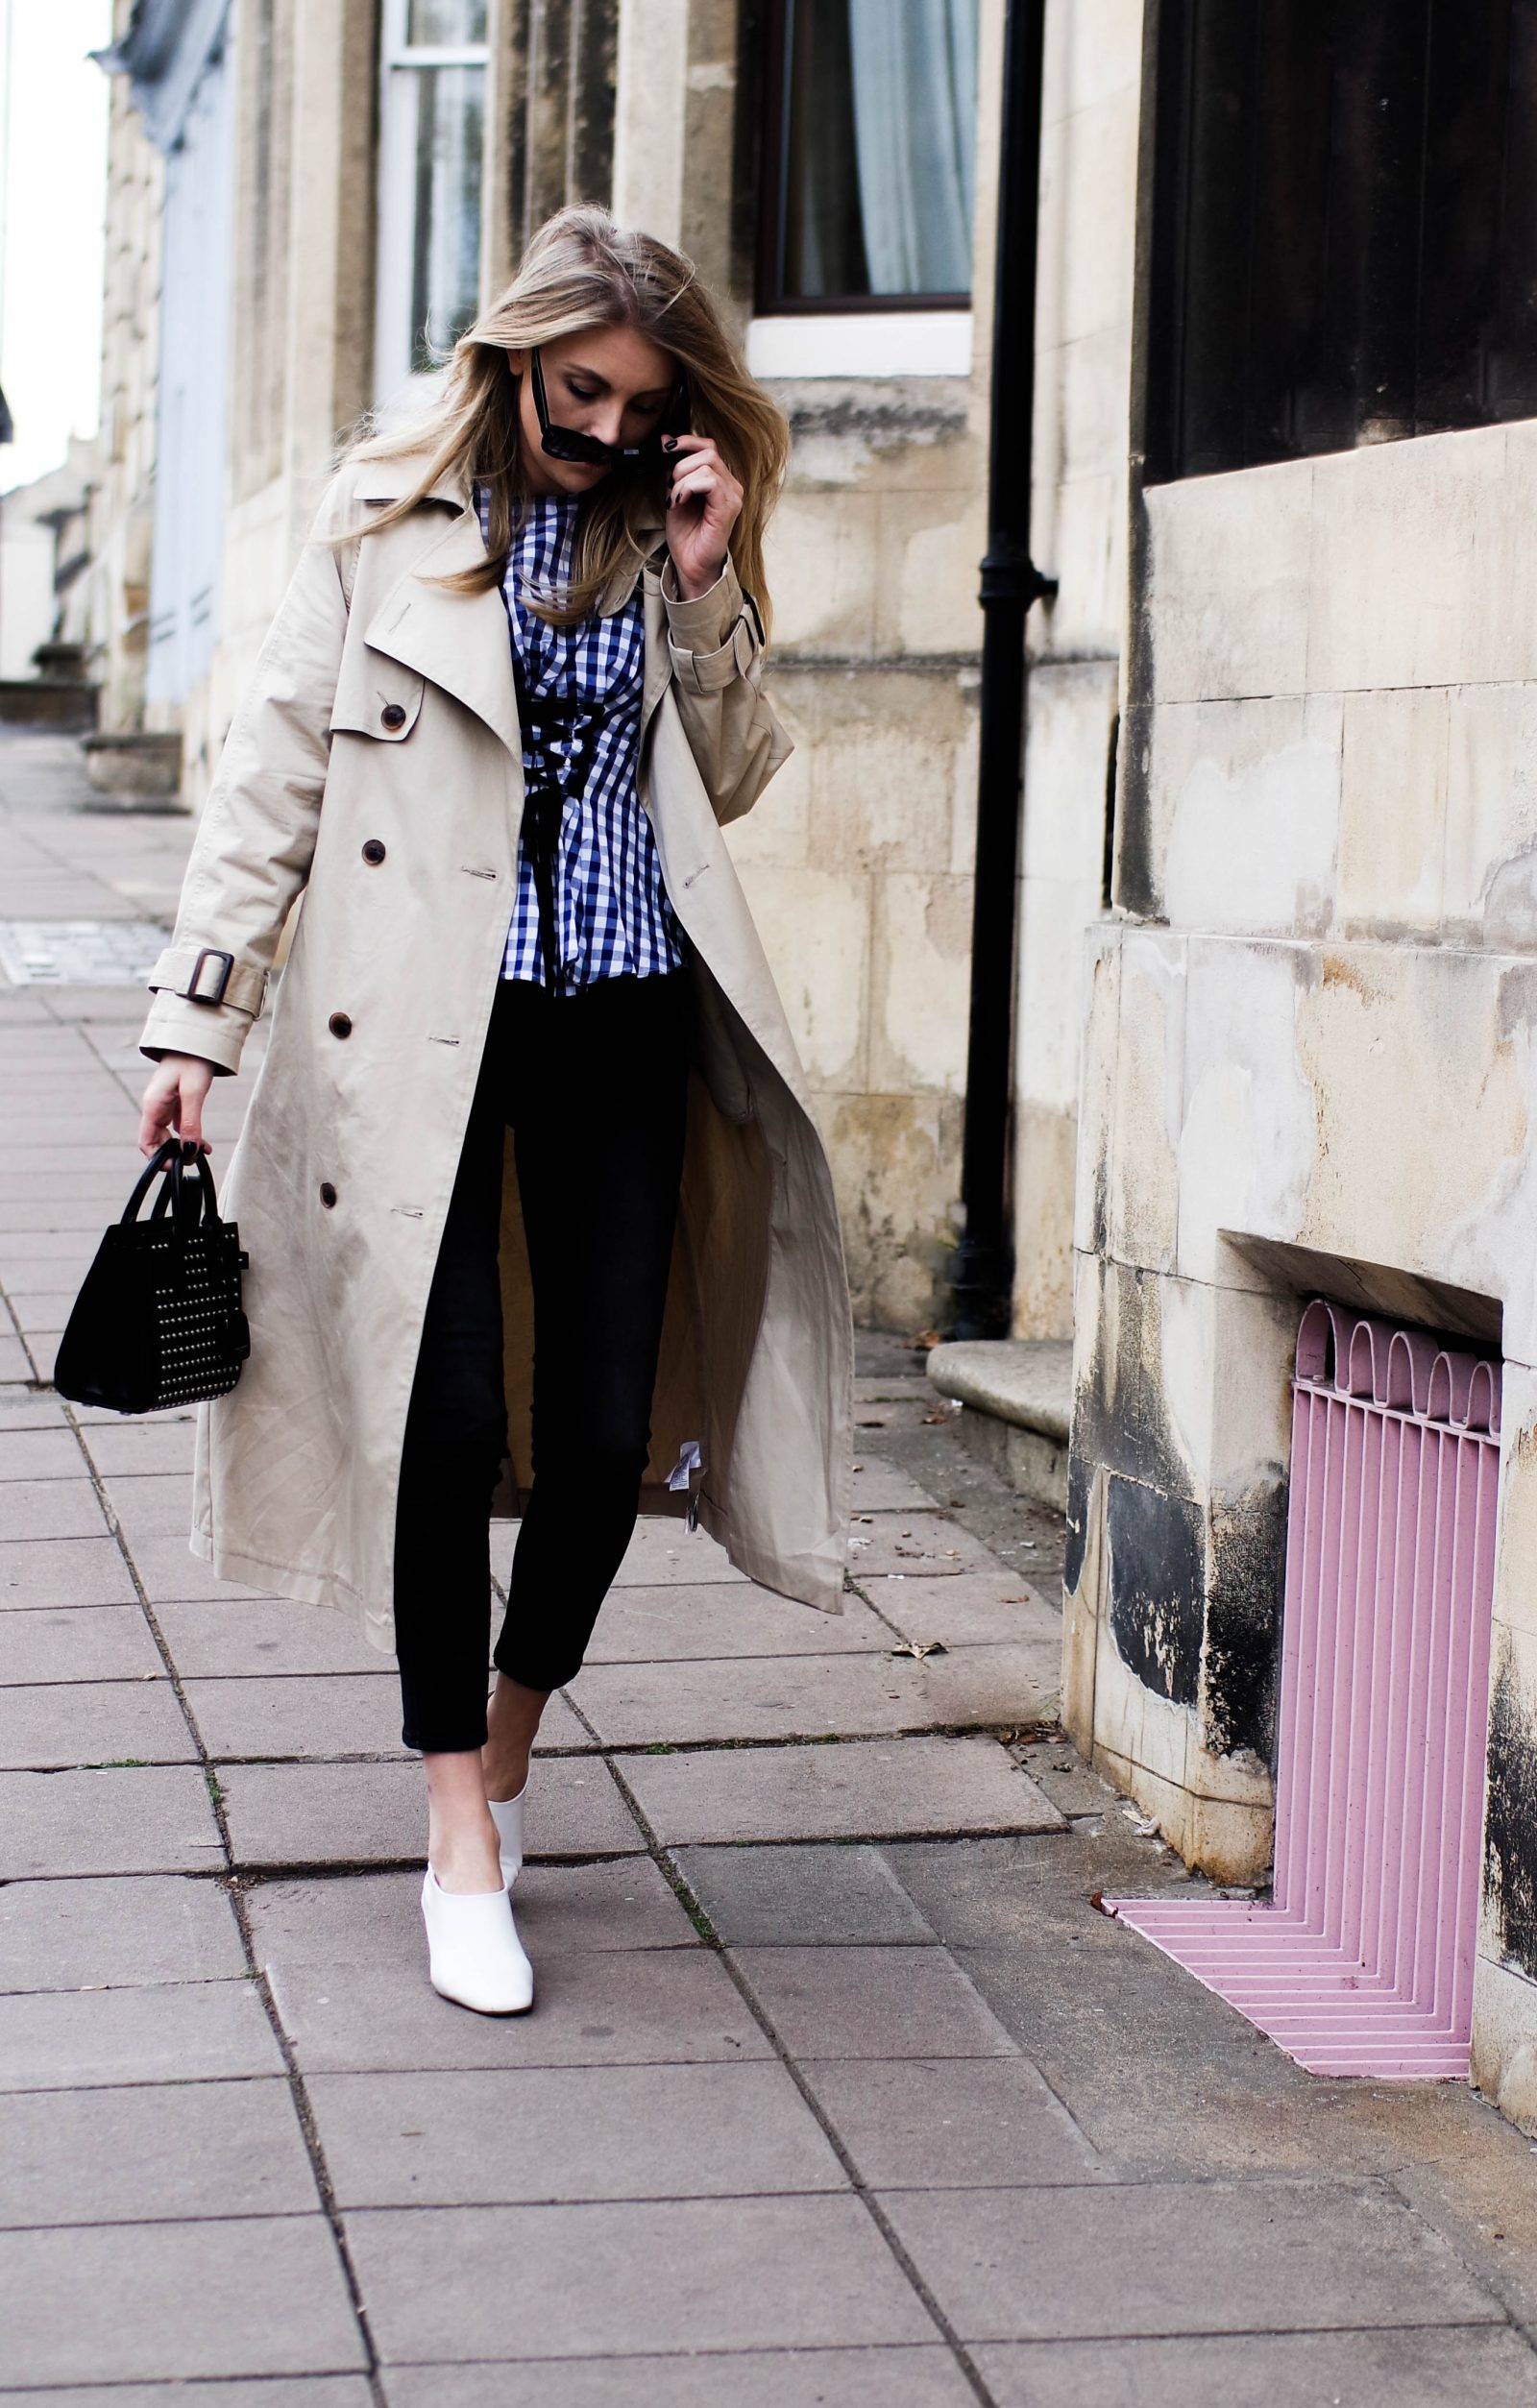 5 Ways To Wear The Corset Trend - Fashion Blogger Street Style